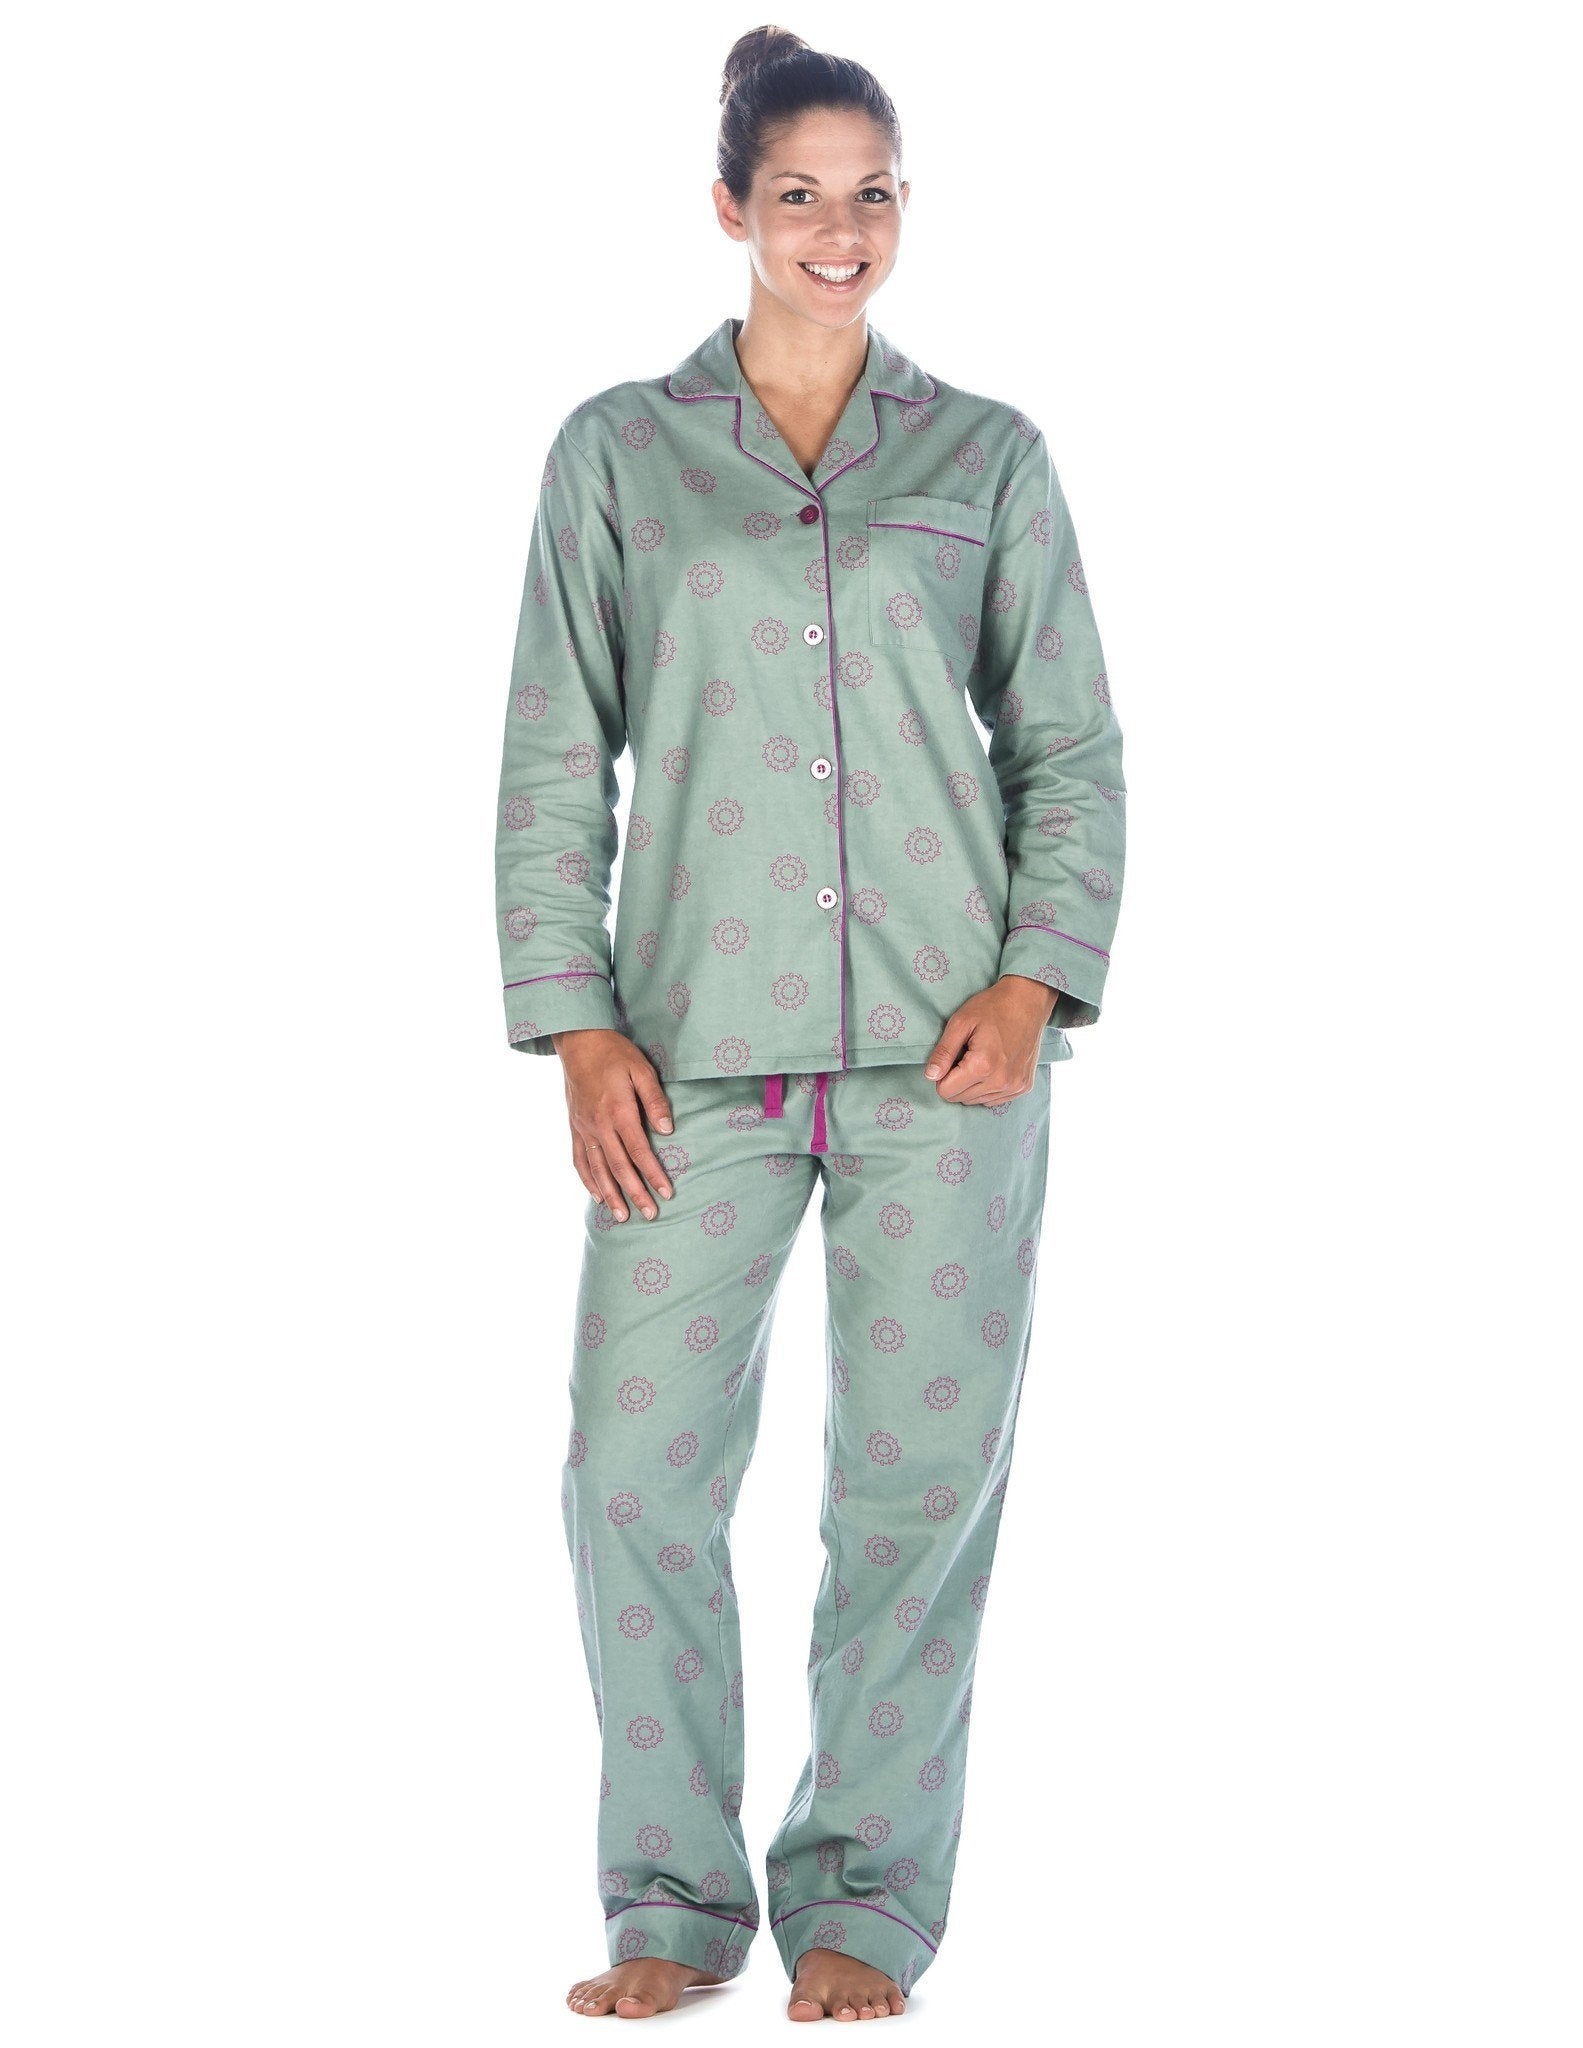 Women's Premium 100% Cotton Flannel Pajama Sleepwear Set (Relaxed Fit) - Ginko Circles - Green